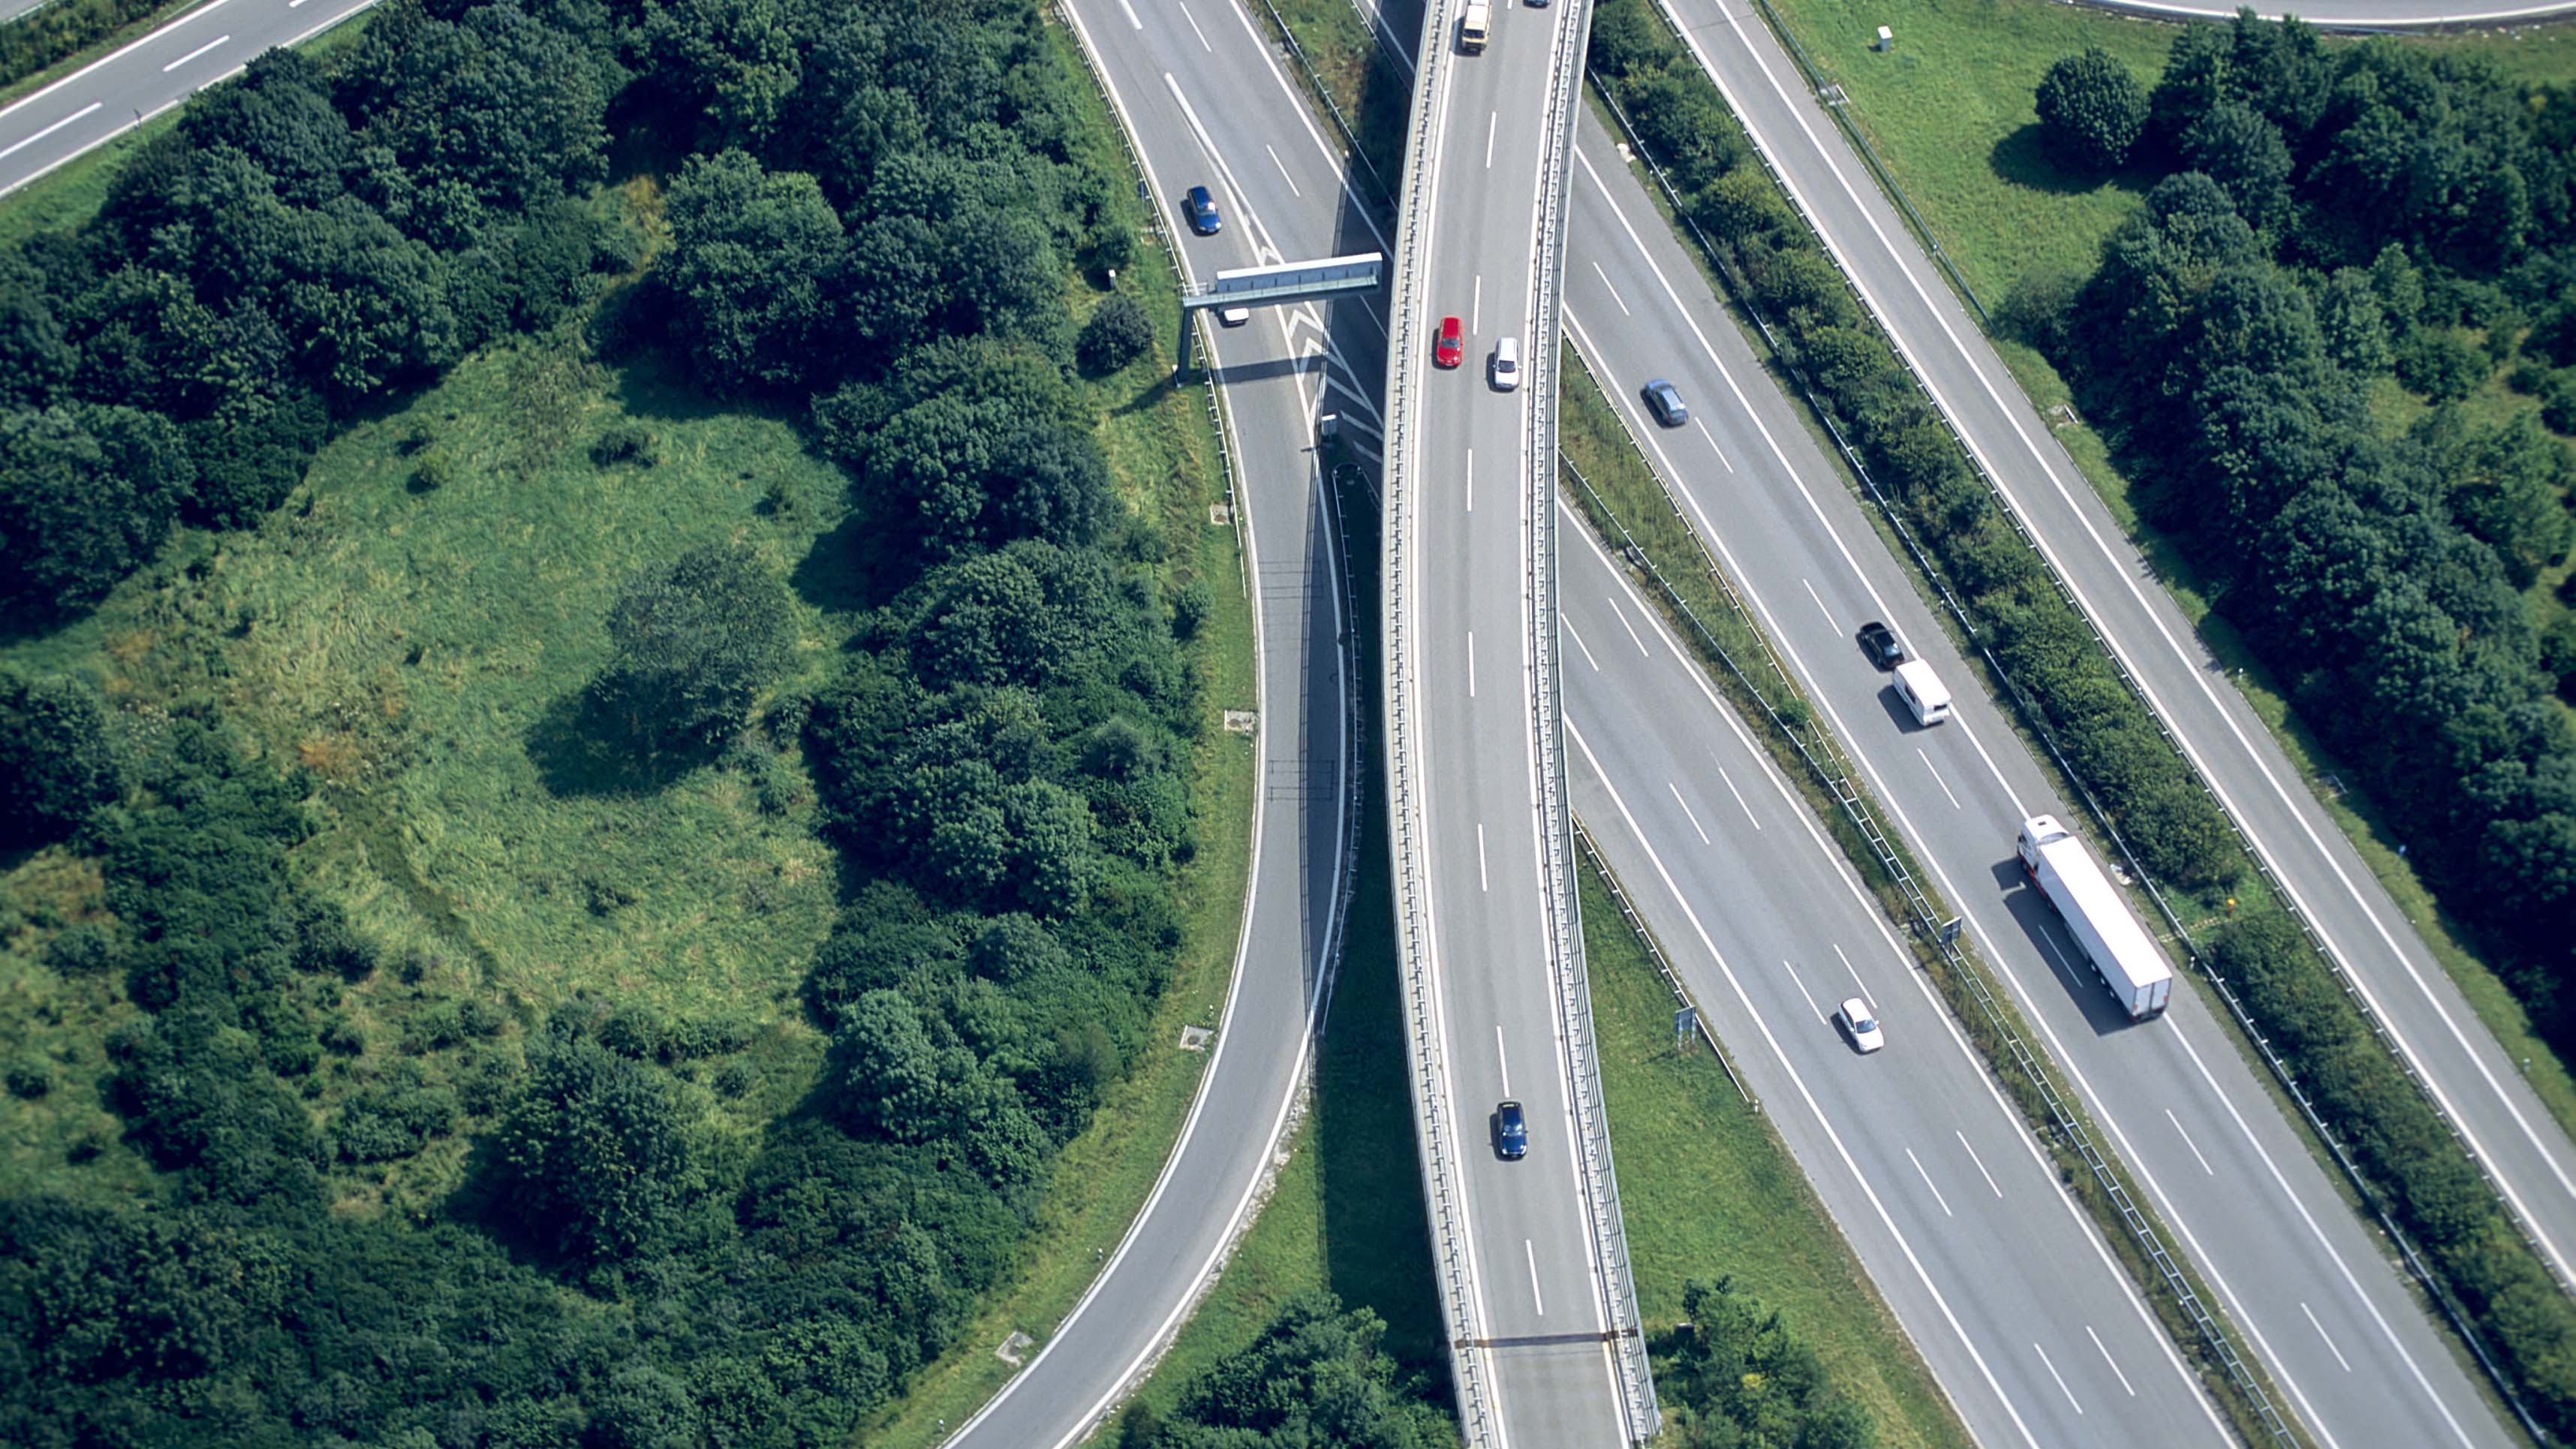 birdseye view of a motorway